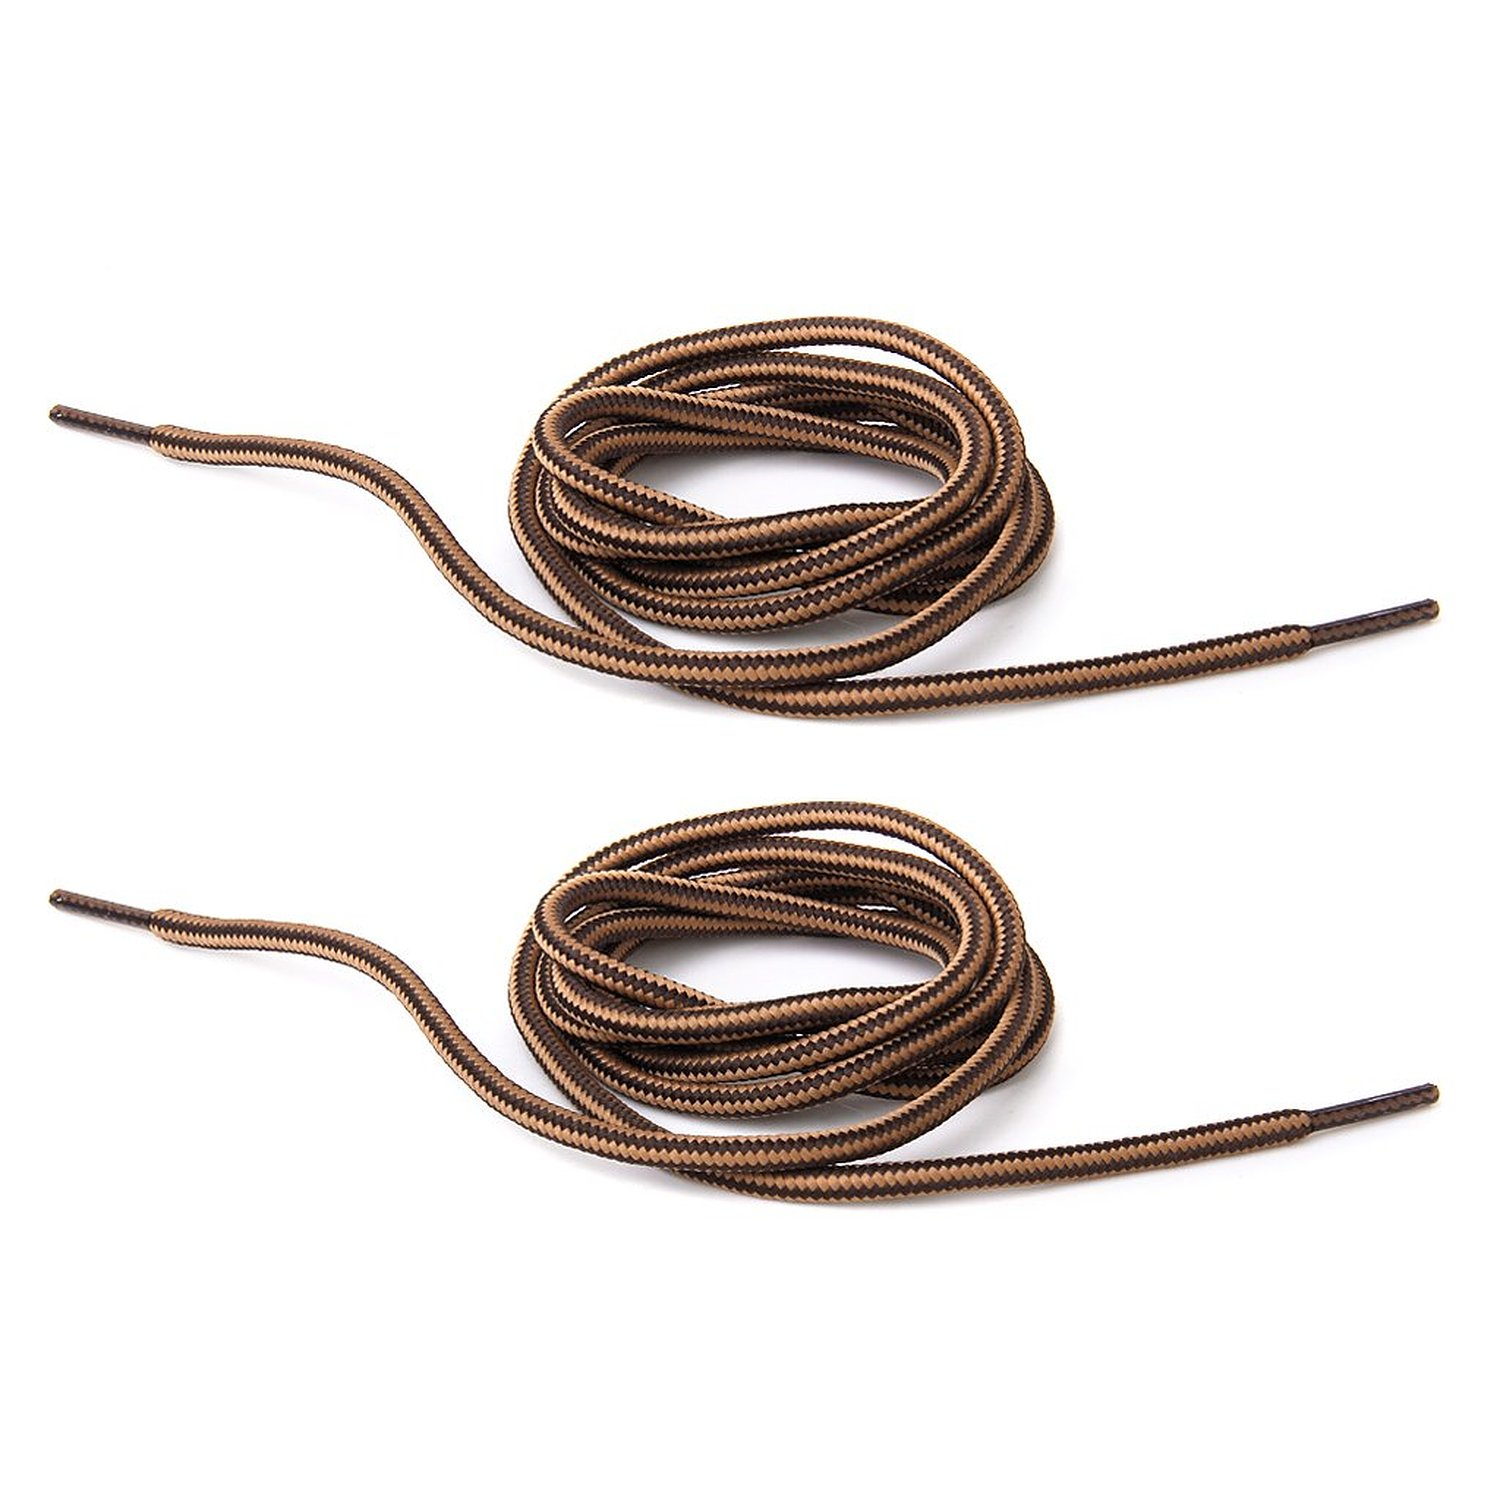 New 1 pair 150 cm Durable High Resistance Laces for Hiking Shoes - Brown Coffee StripesNew 1 pair 150 cm Durable High Resistance Laces for Hiking Shoes - Brown Coffee Stripes